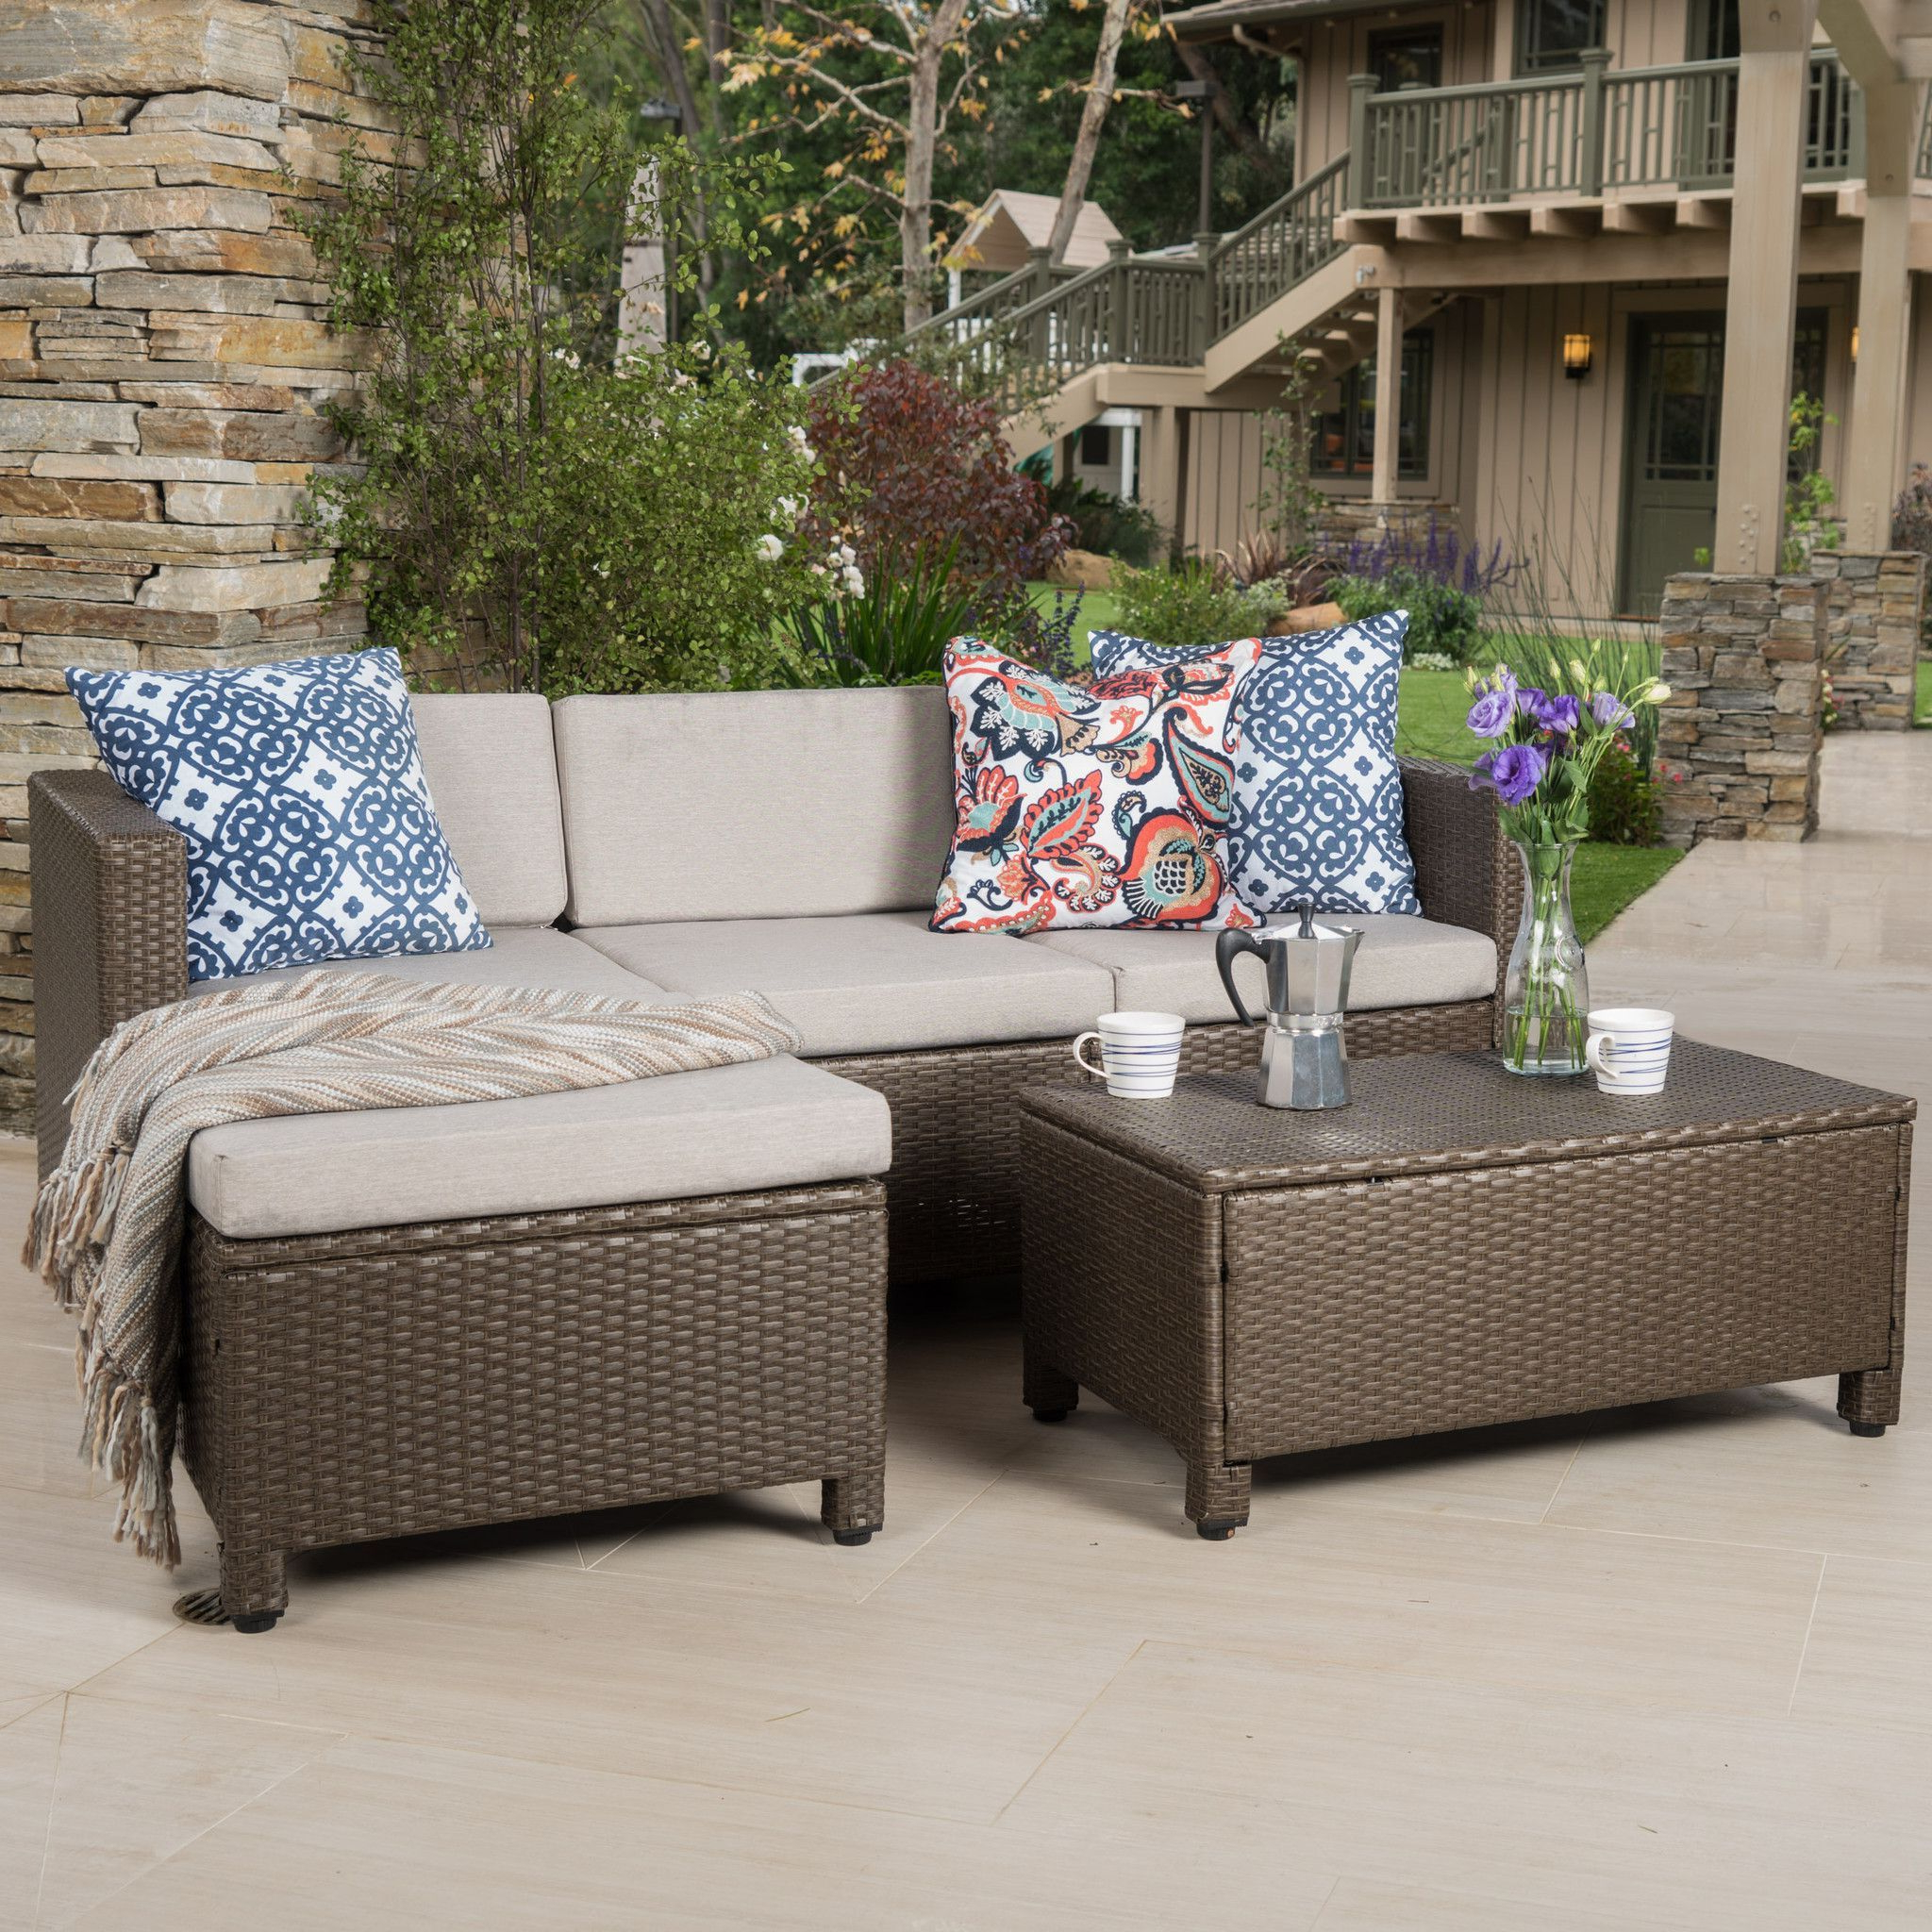 Larsen Patio Sectionals With Cushions In Well Known Budva Outdoor L Shape Brown Wicker Sofa W/ Cushions In (View 19 of 20)